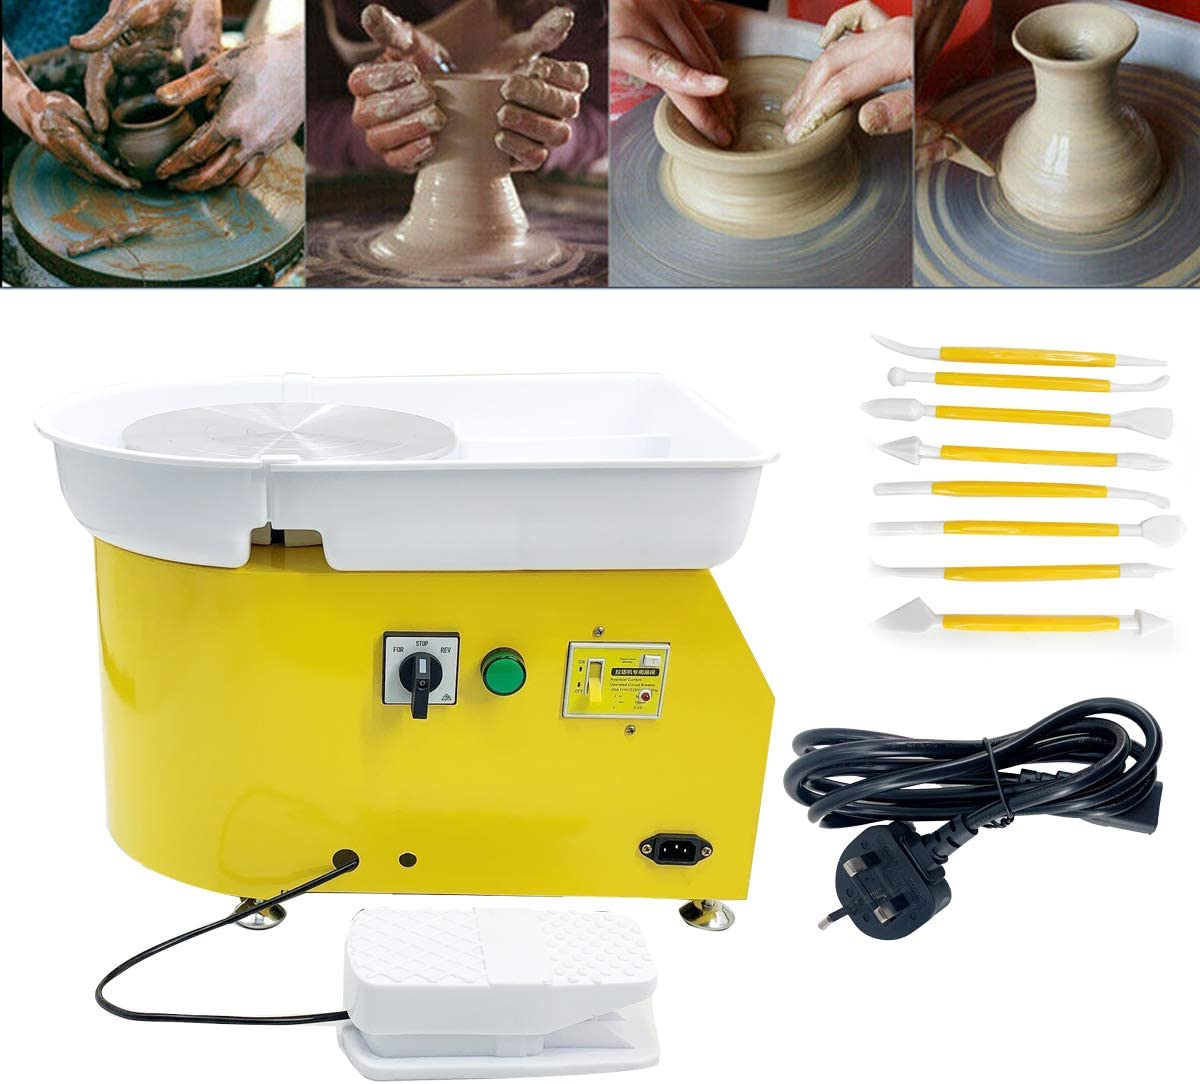 25cm Turntable Ceramic Clay Making Pottery Machine 300r//min Pottery Wheel with Foot Pedal Ceramic DIY Craft for School Teaching Pottery Bar Home TABODD Electric Pottery Machine with 8 Shaping Tools